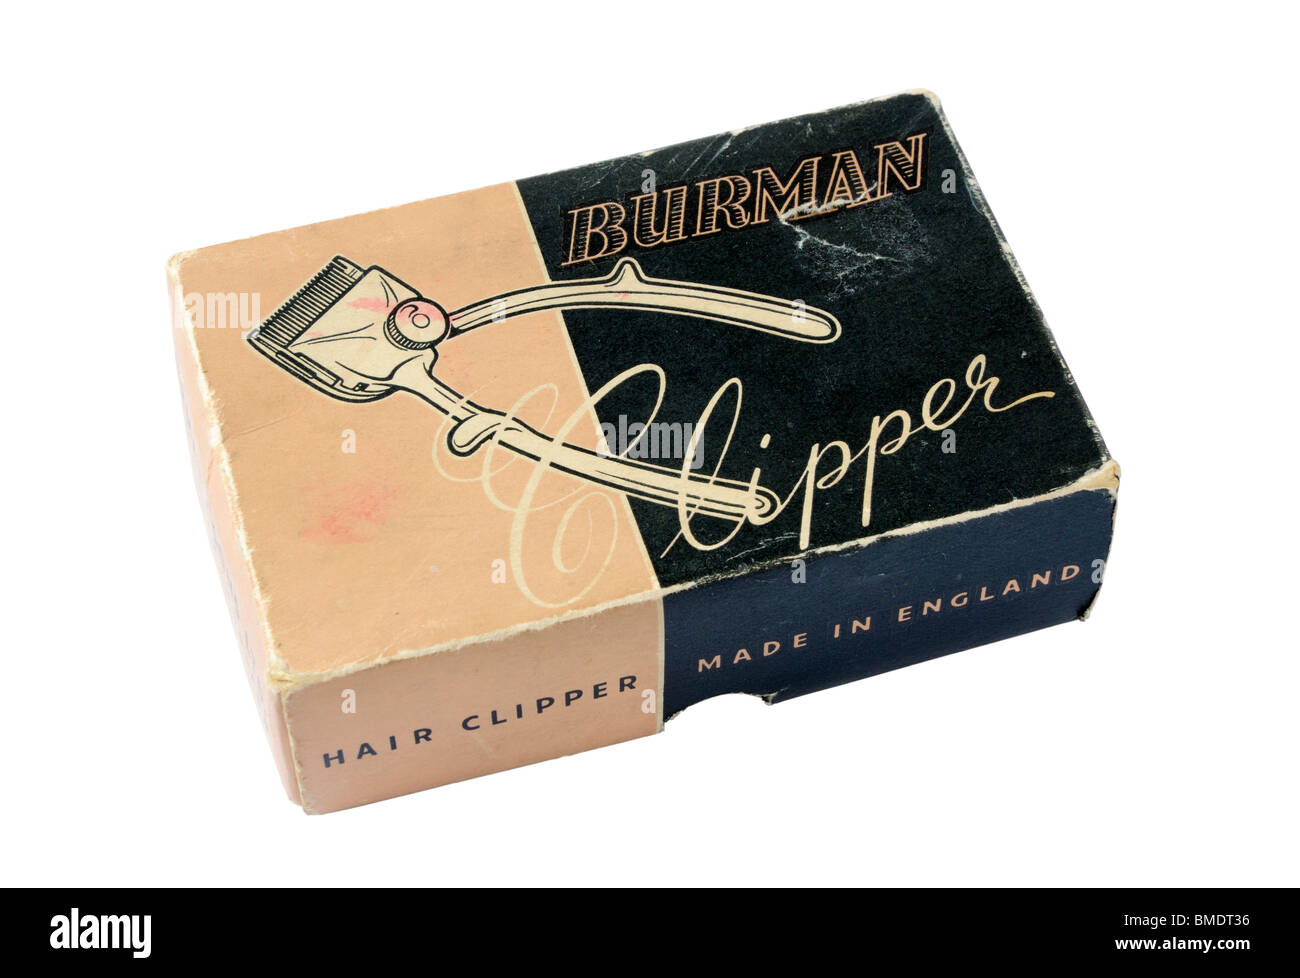 Vintage Burman Hair Clippers - Stock Image